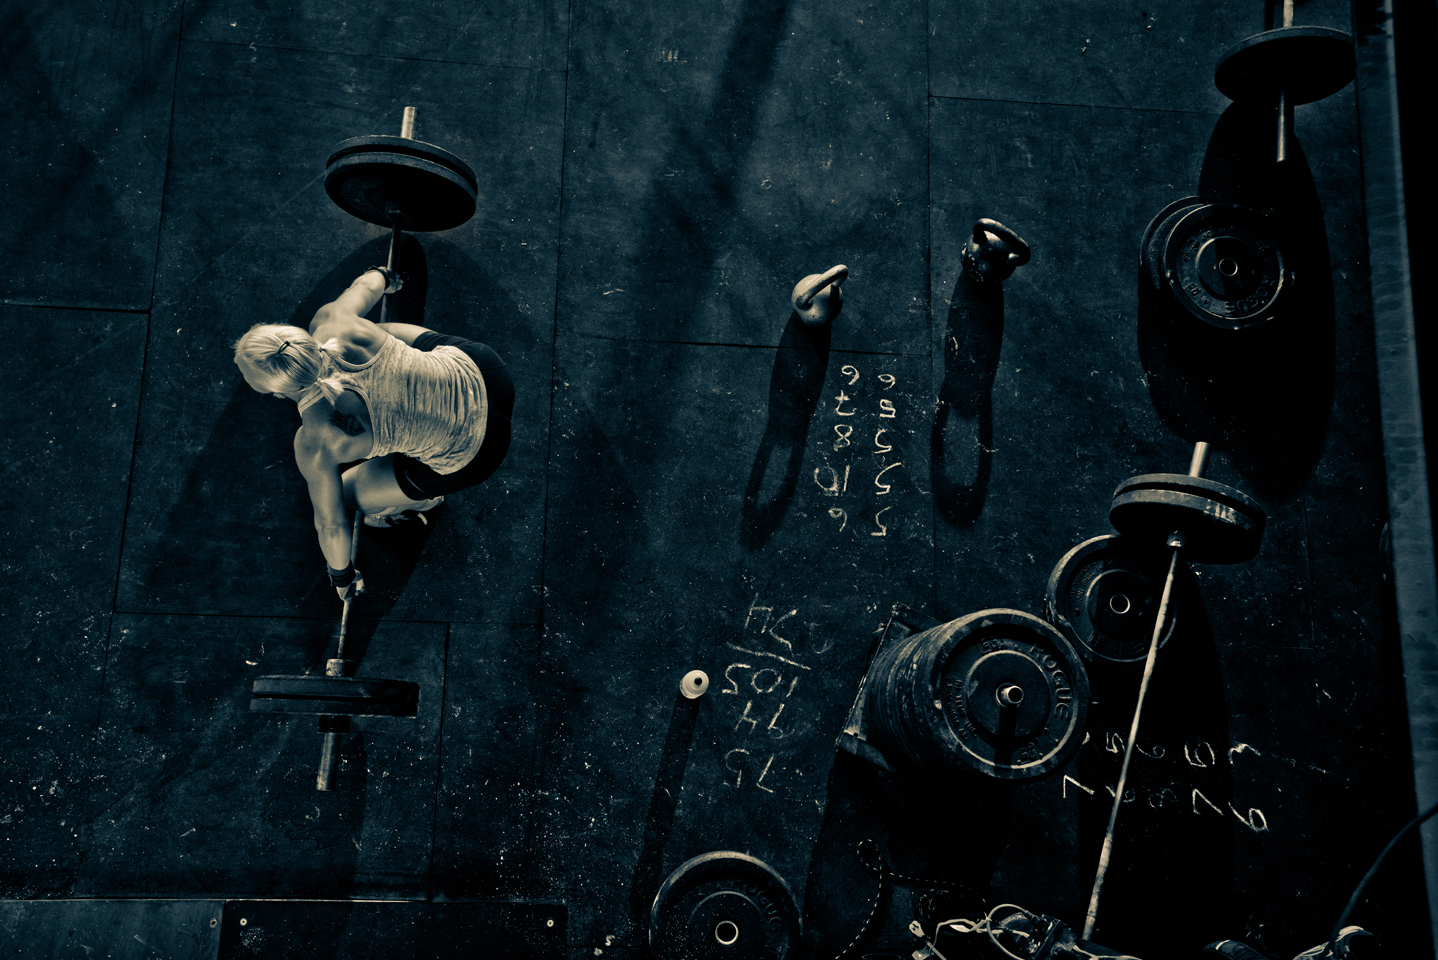 crossfit-photography-camera-settings-Google-Search-wallpaper-wp580937